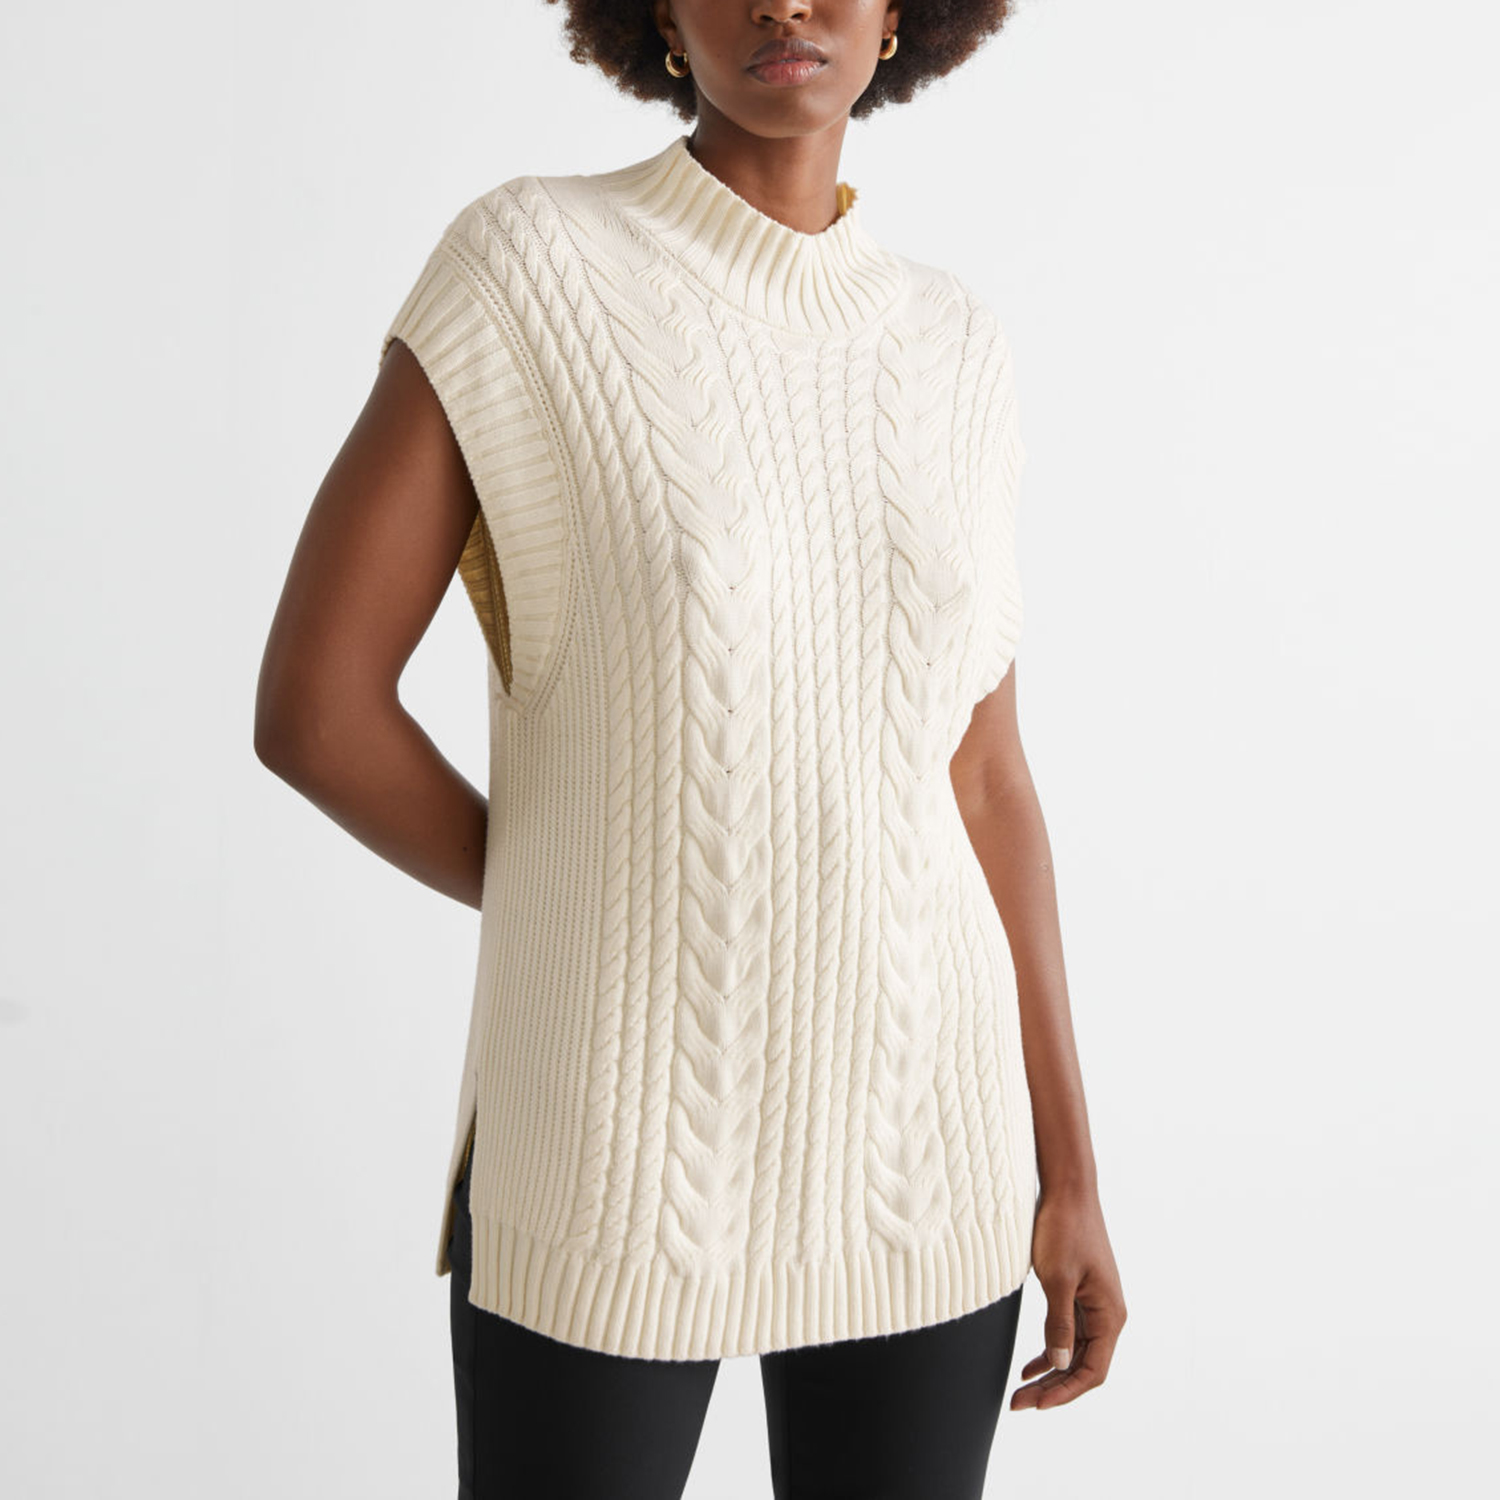 & Other Stories Oversized Cable Knit Vest